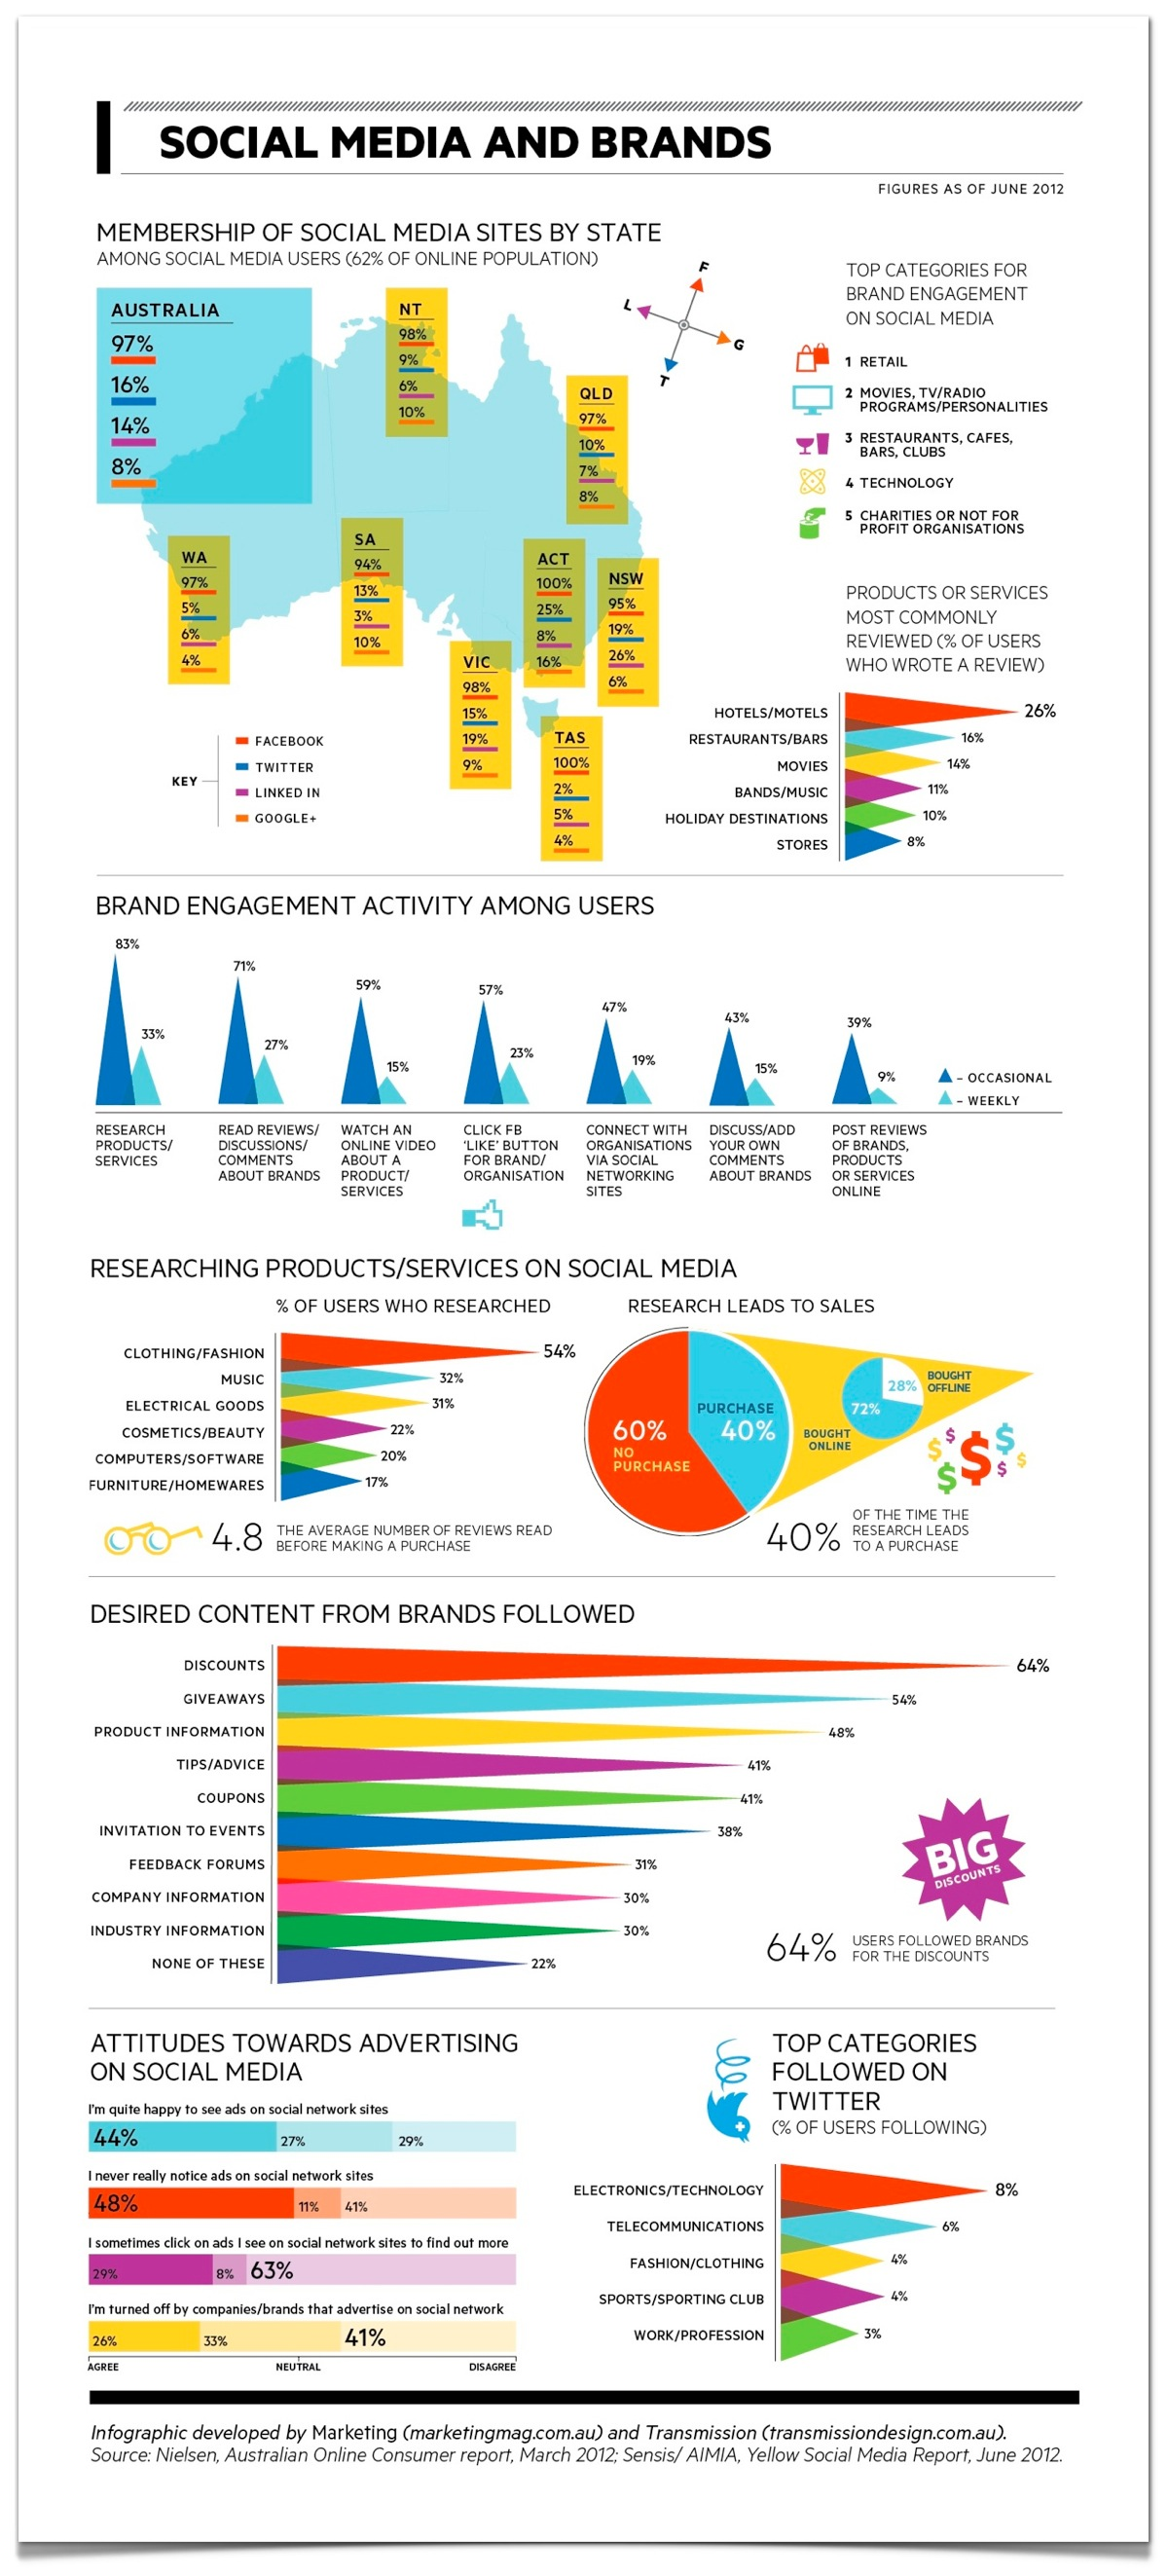 Australian Brands and Social Media-Infographic